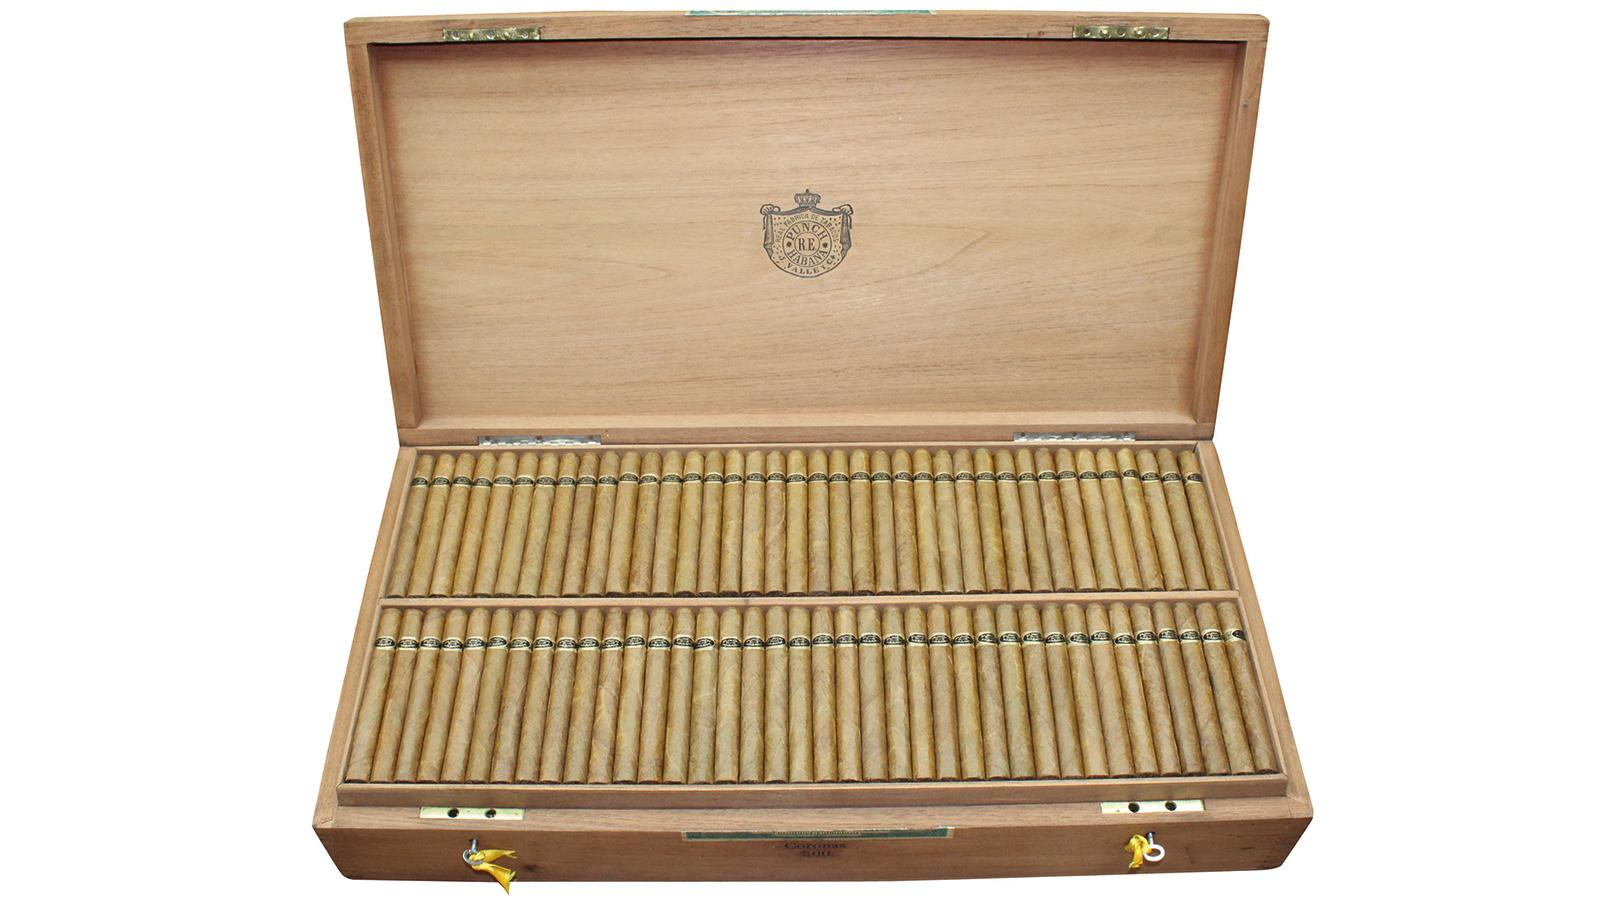 How Do I Get Started Collecting Vintage Cigars?